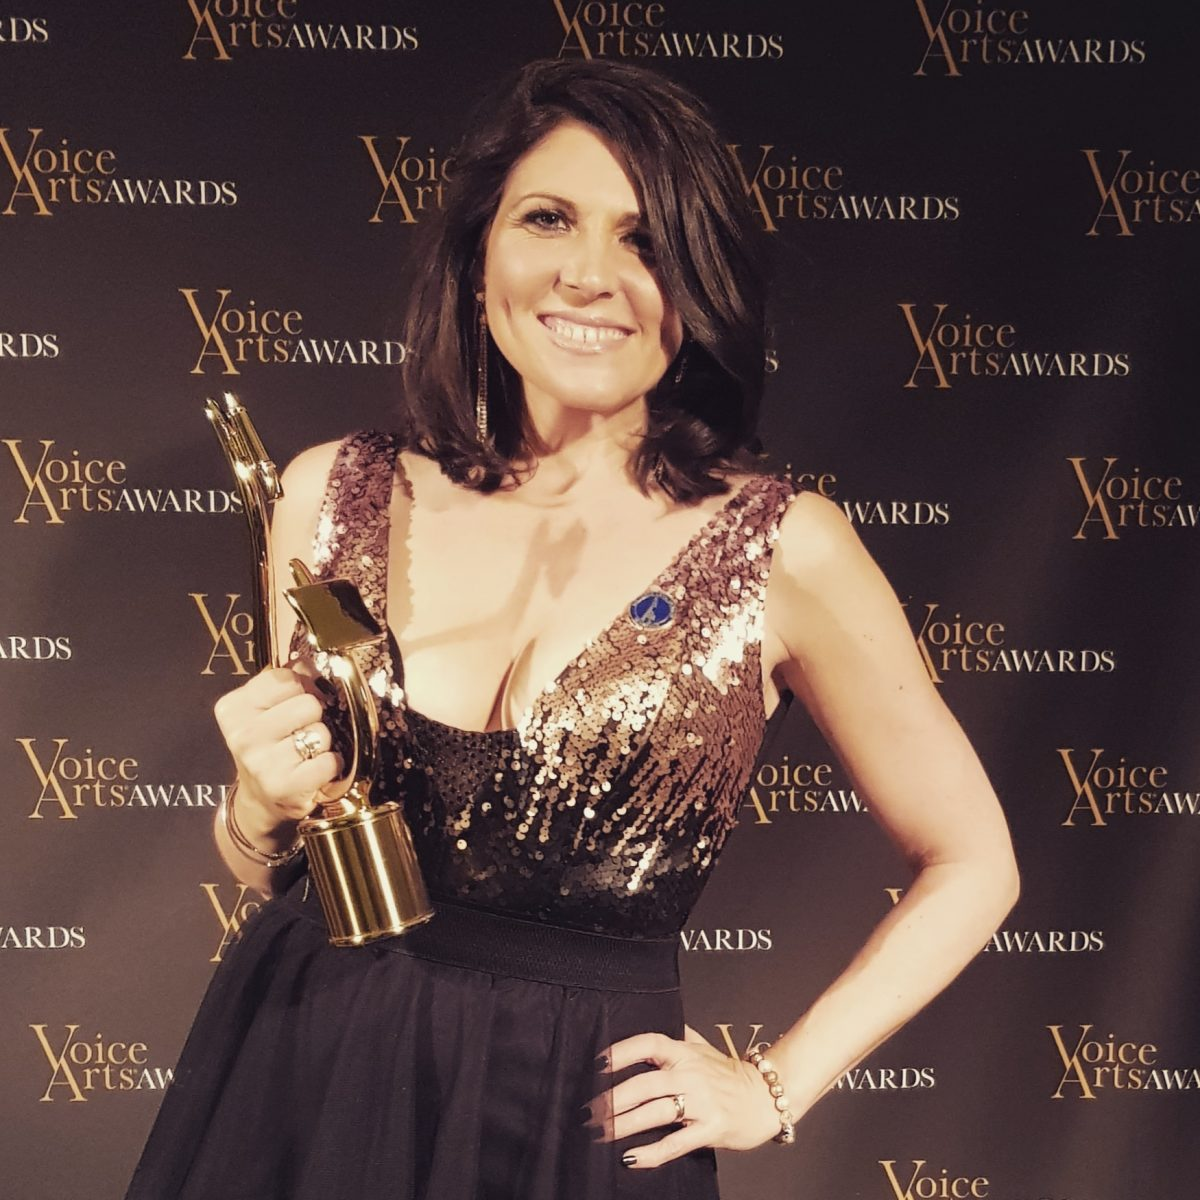 voice actor award